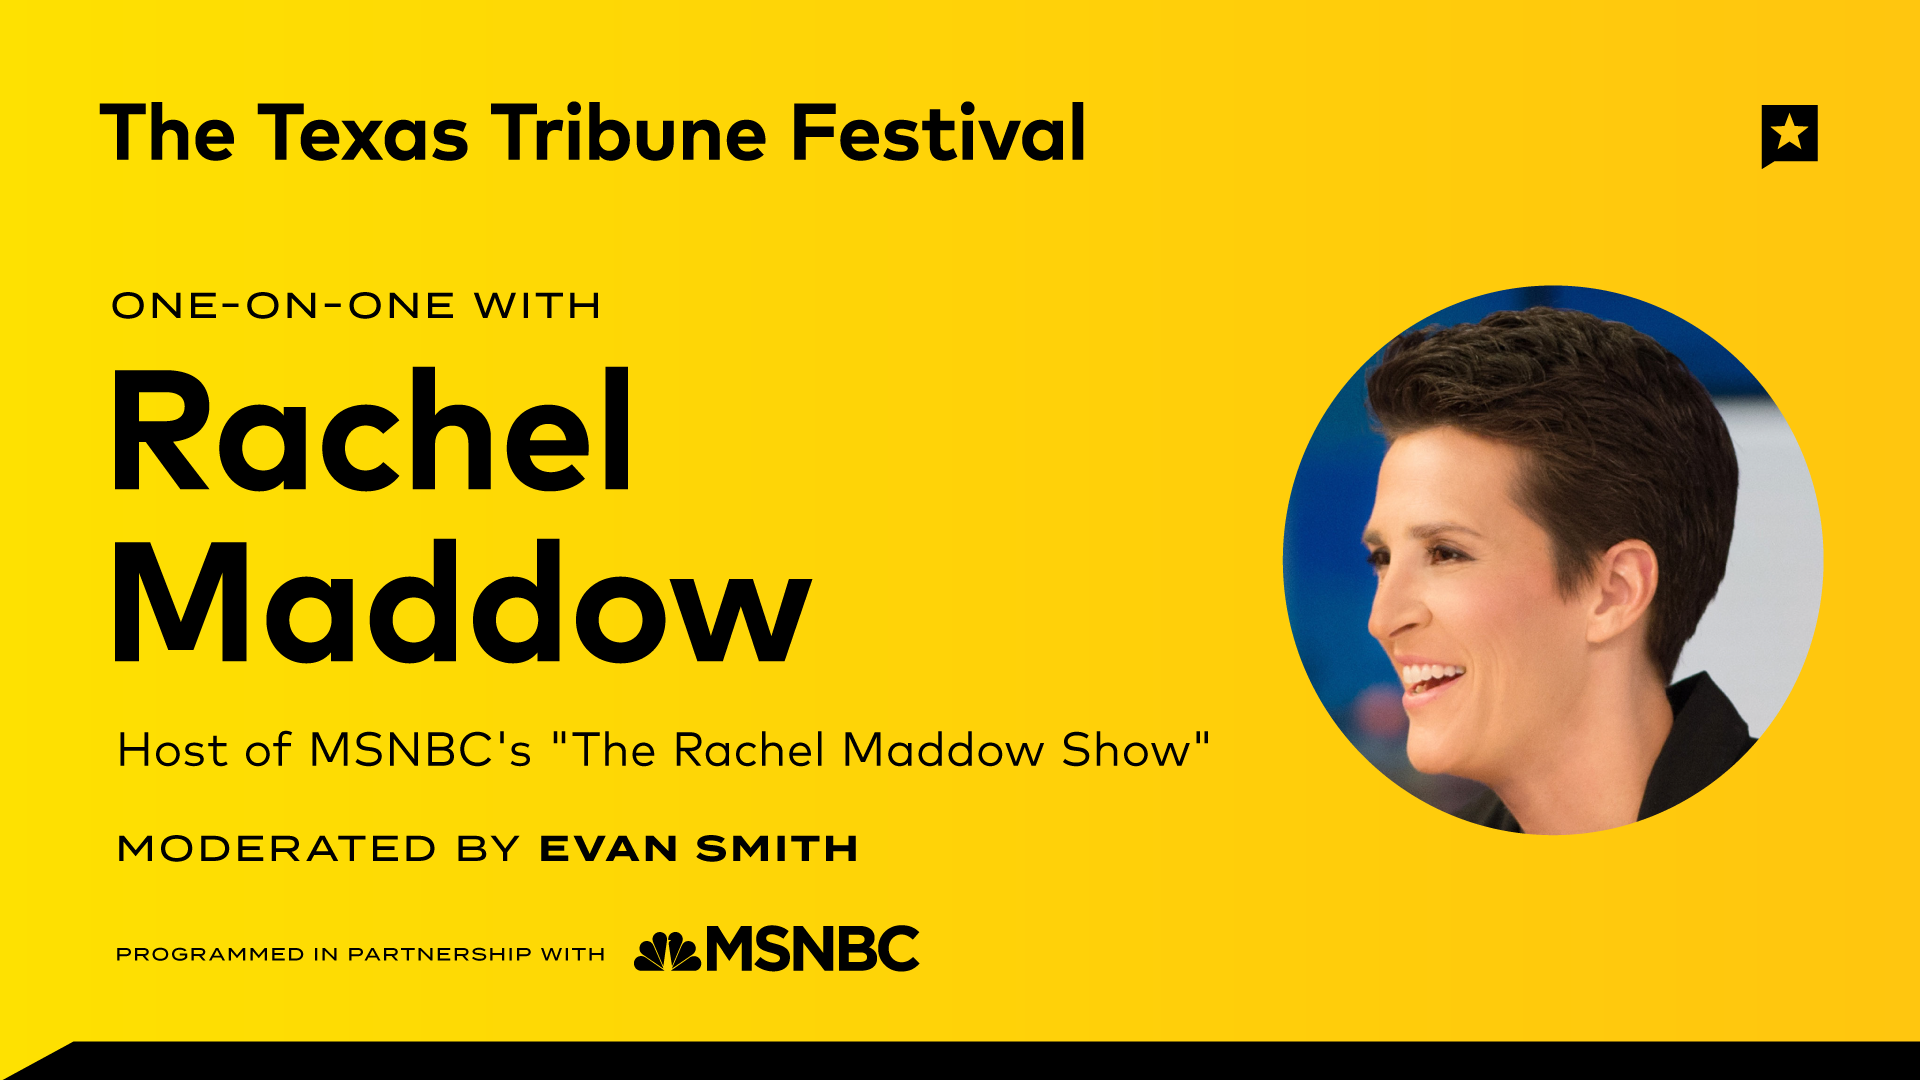 One-on-One with Rachel Maddow